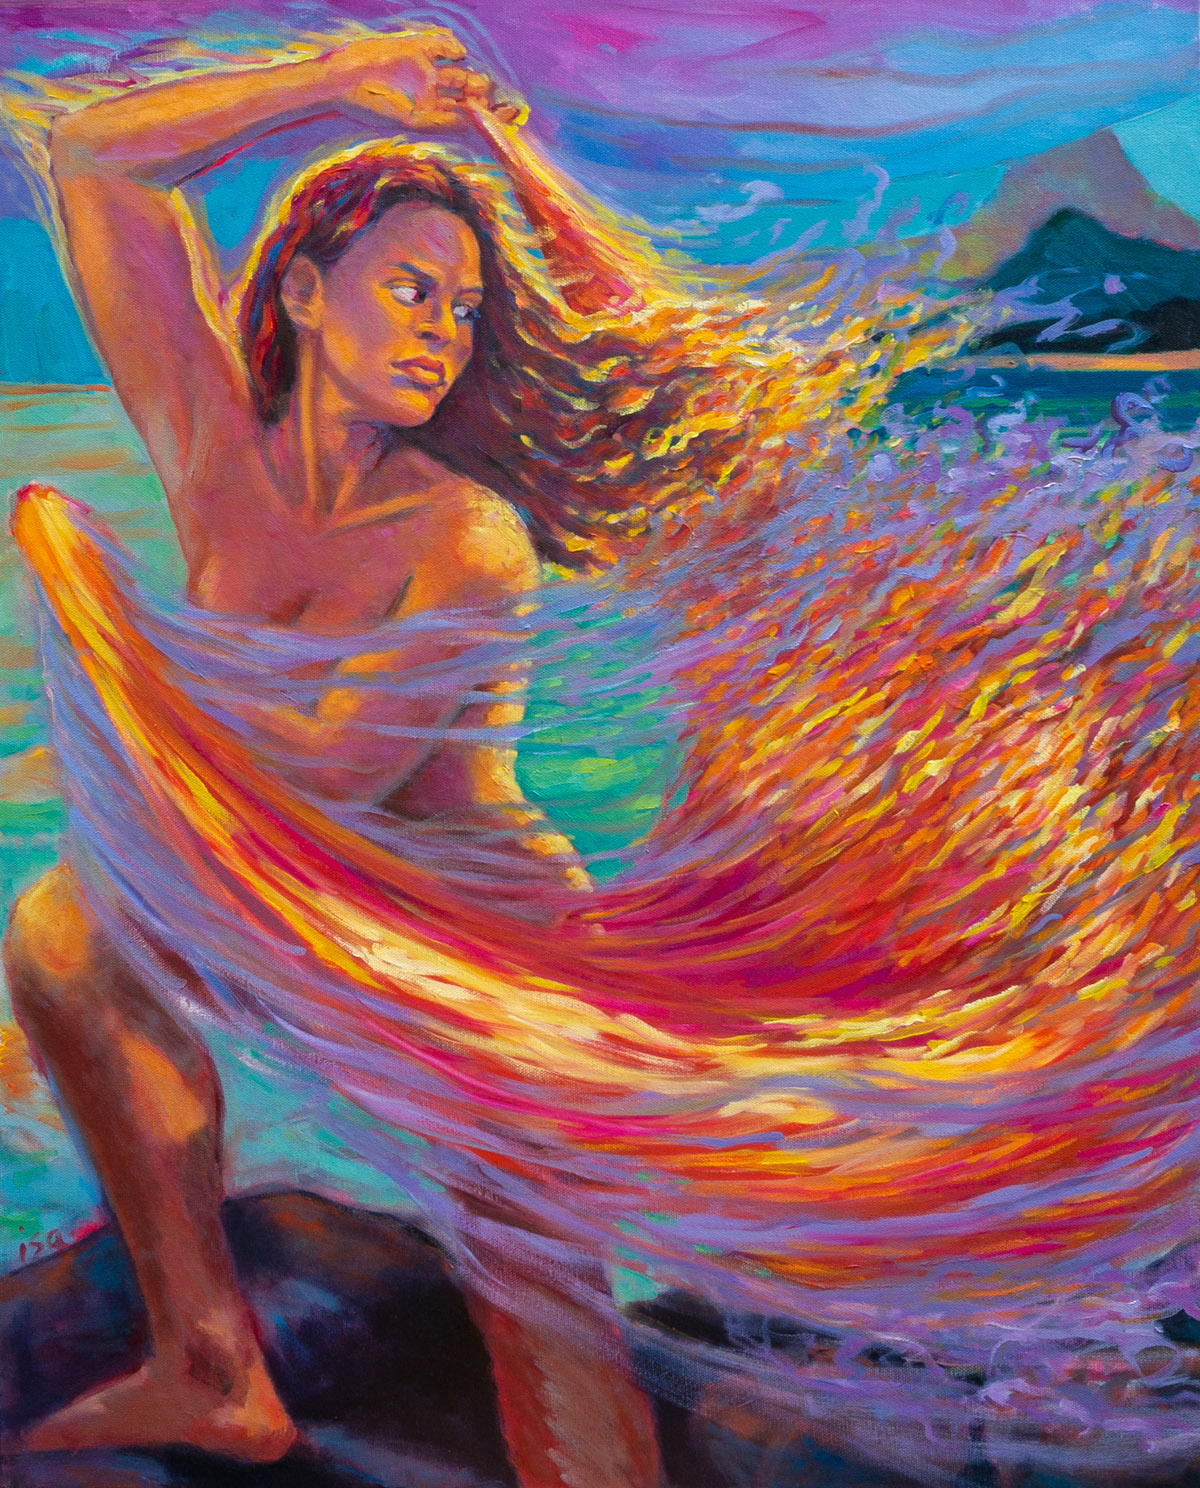 Dancing with Veil of Fire